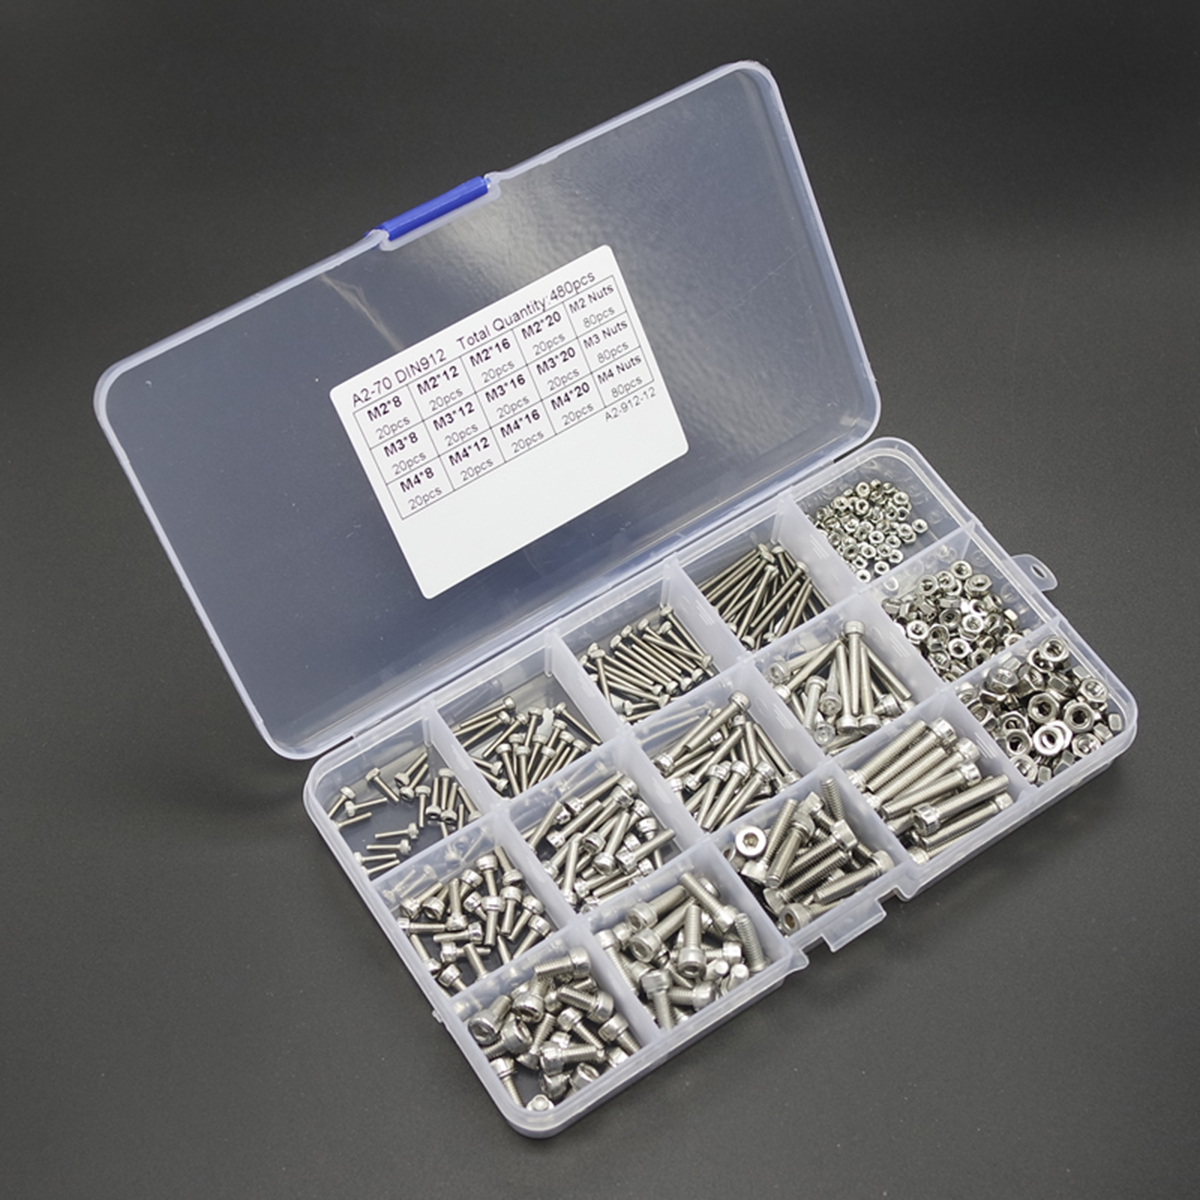 480pcs Stainless Steel Hex Socket Screws M2 M3 M4 Head Cap Screw Nut Set With Box Mayitr casio g shock x burton rangeman gw 9400btj 8er white